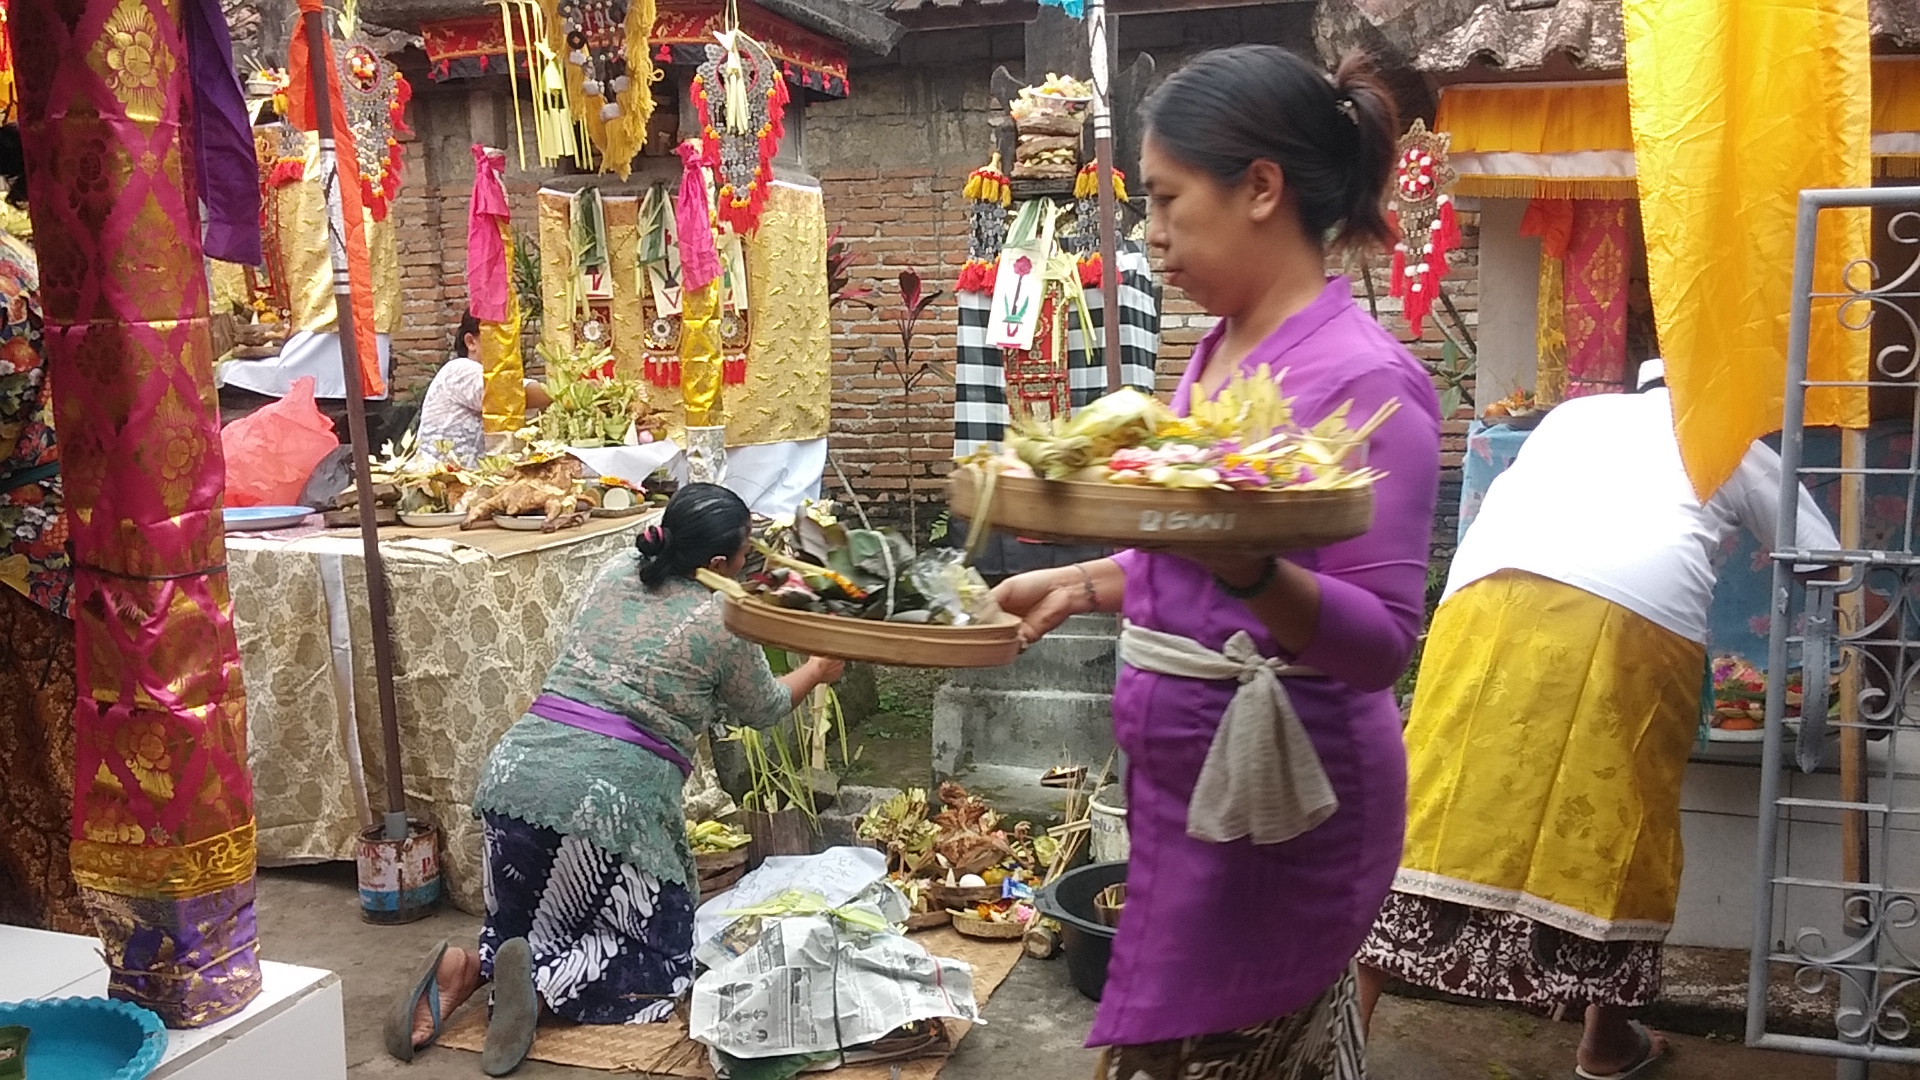 Everyone preparing the offerings in the family temple.